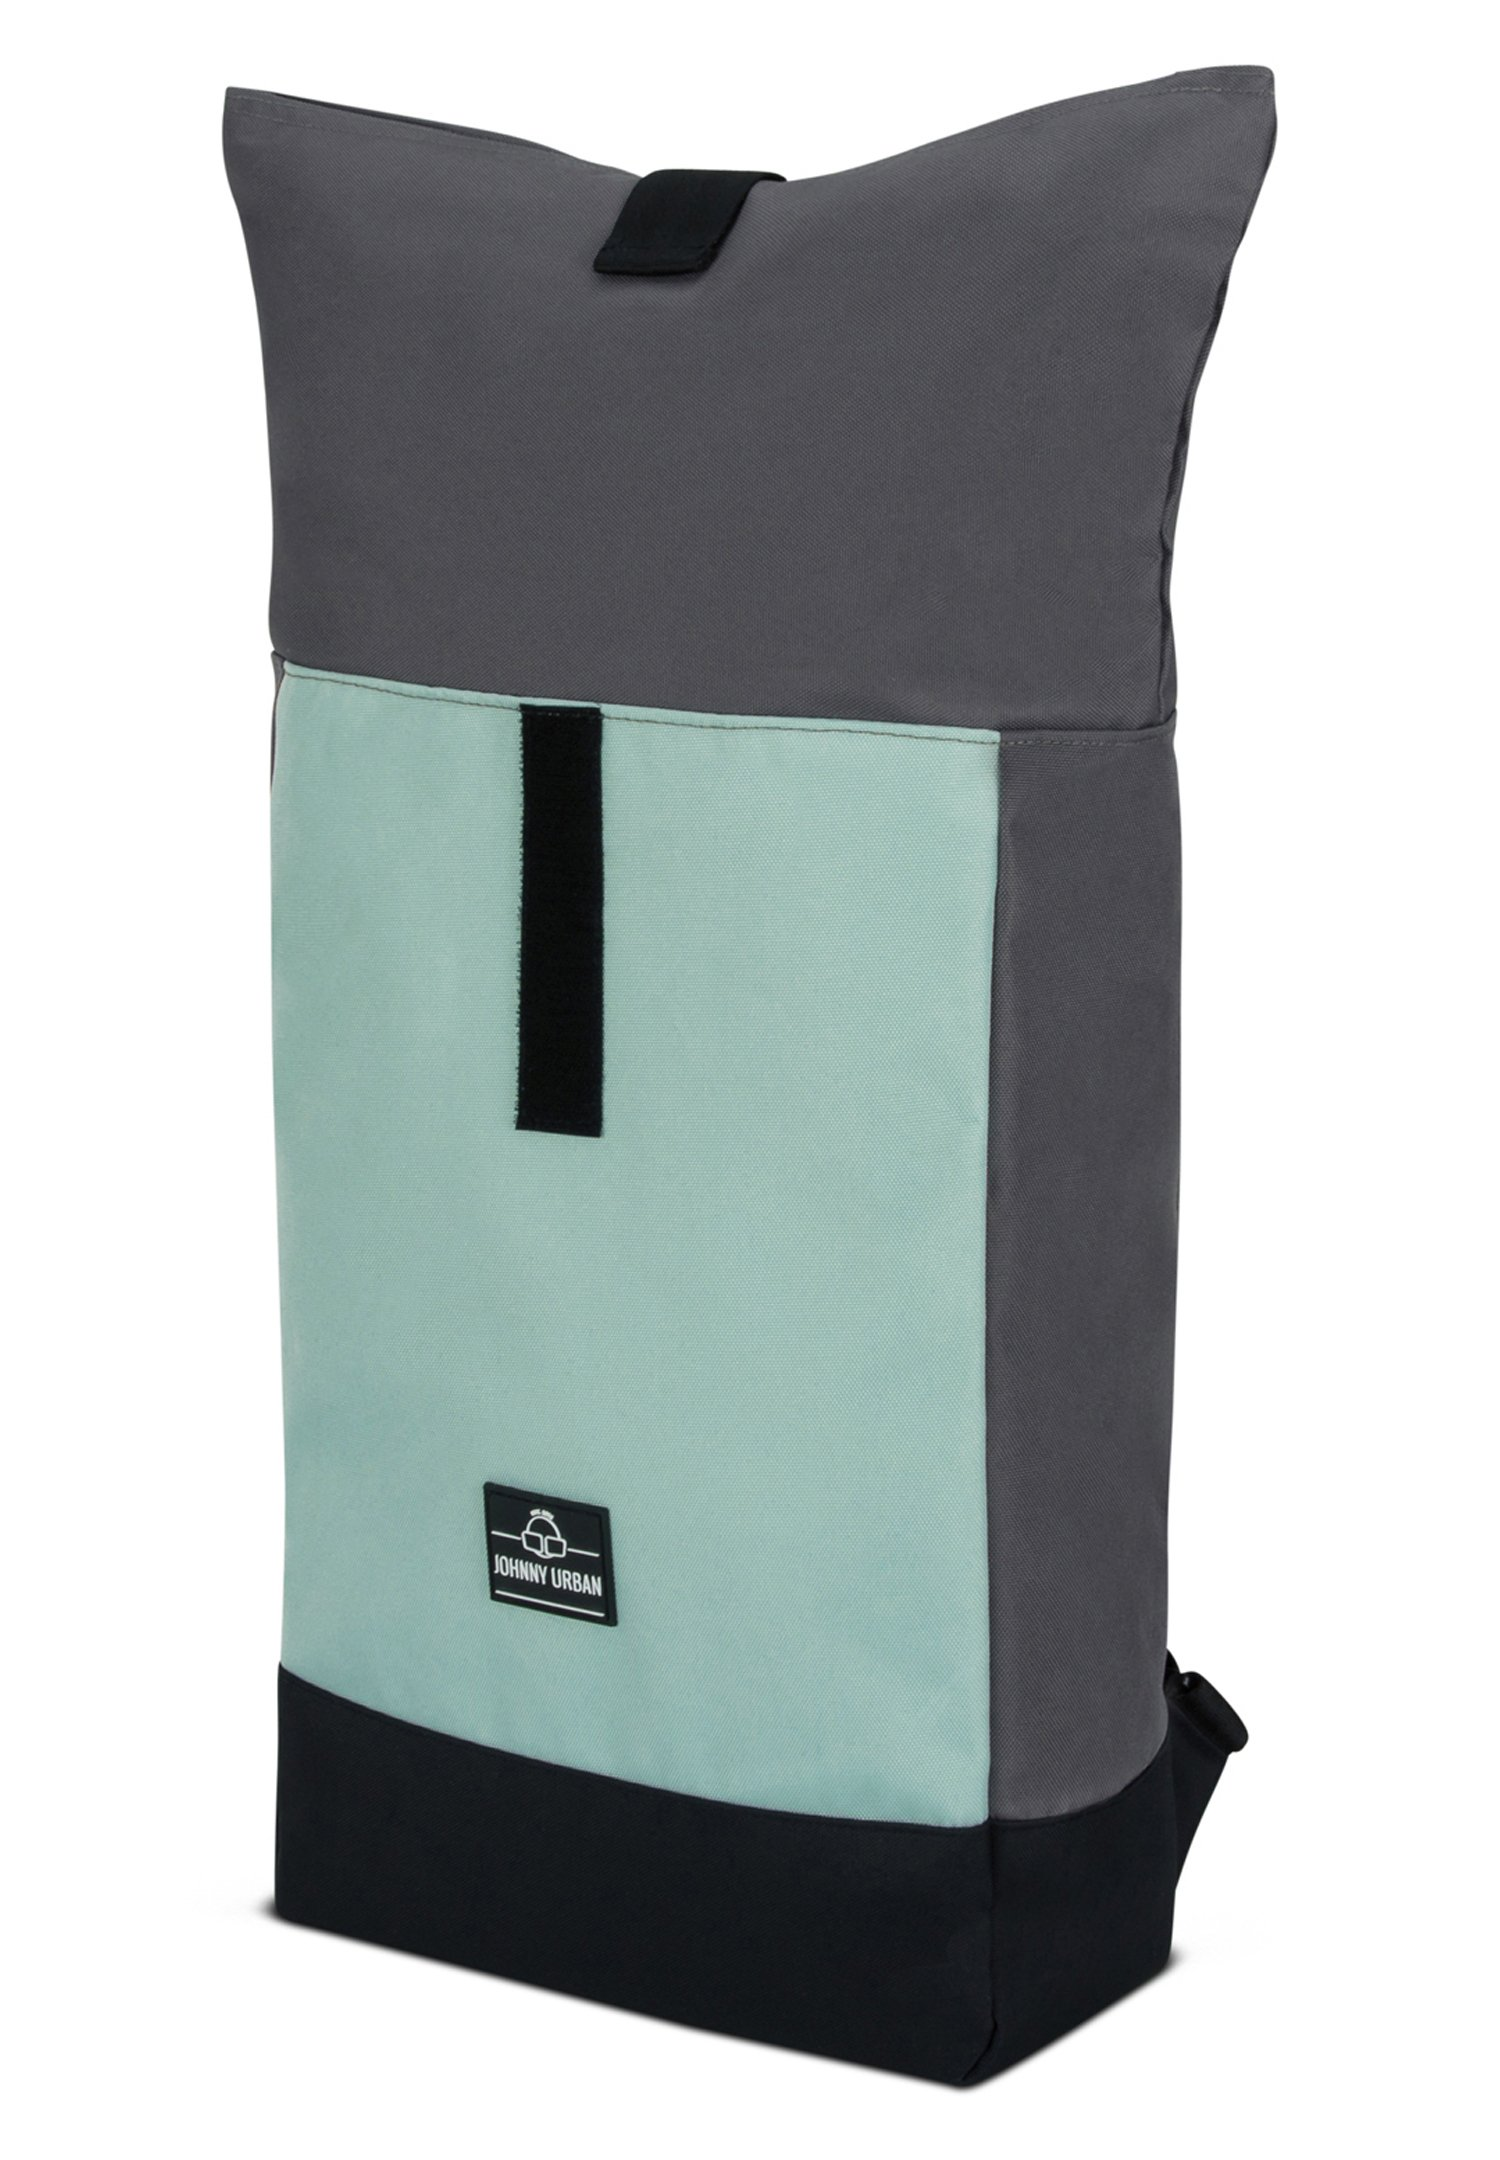 Cheapest Outlet Johnny Urban RYAN - Rucksack - grau-mint | men's accessories 2020 zenyX